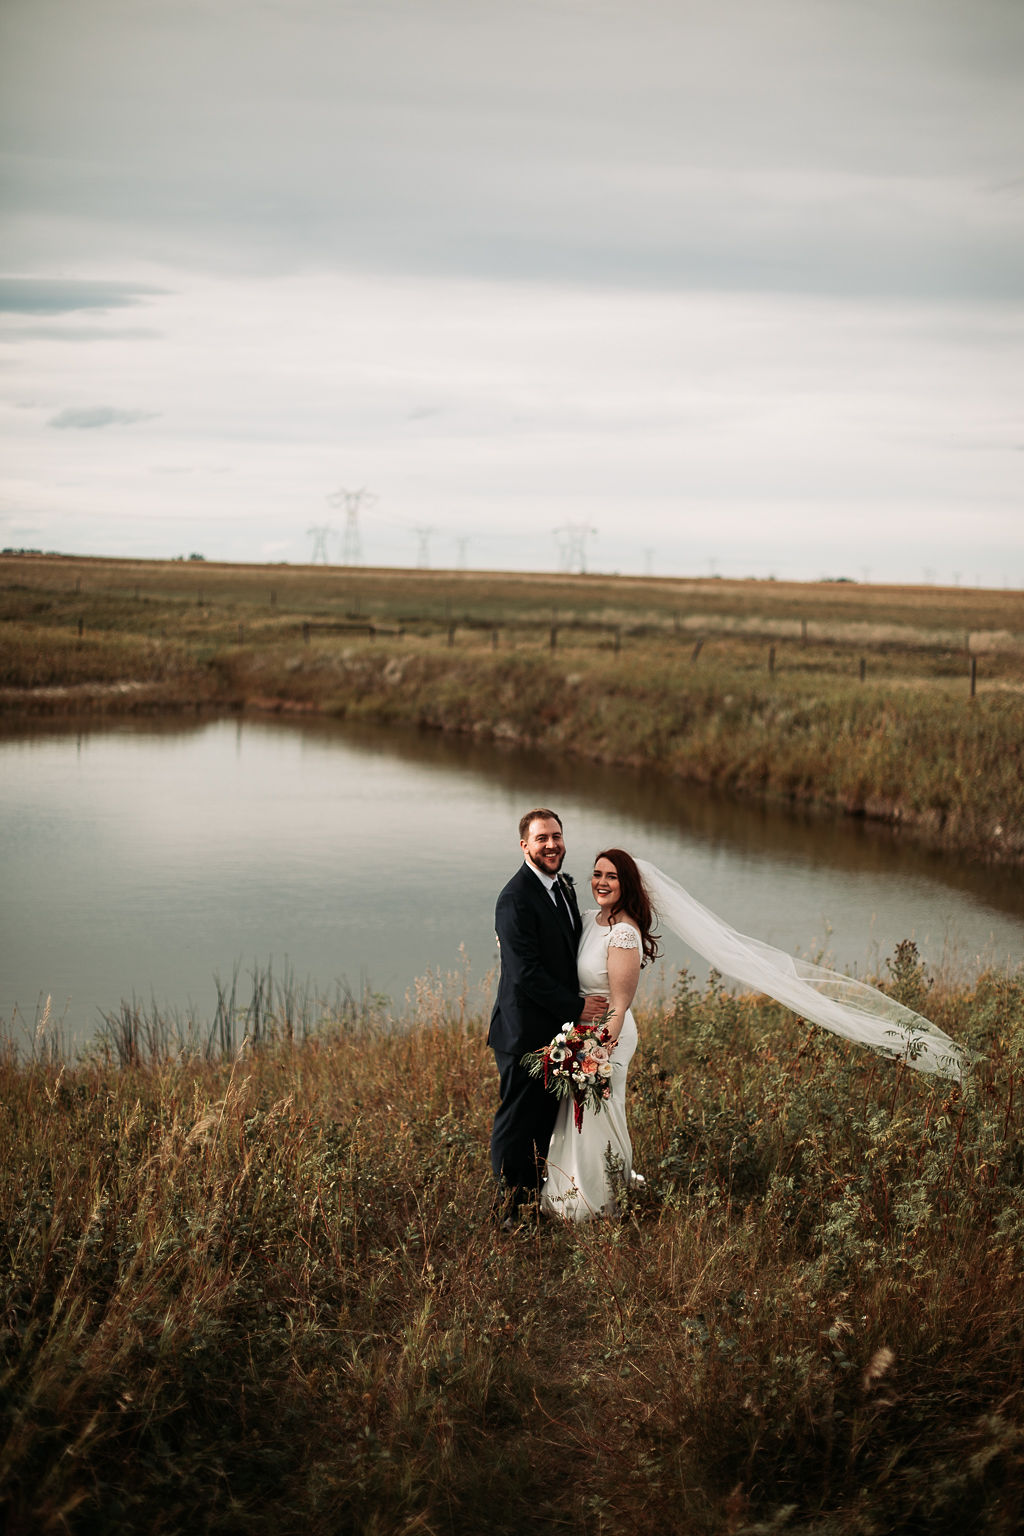 prairie fields surround a pond of water, a couple stands beside the water while the brides veil blows in the wind. www.thegathered.ca